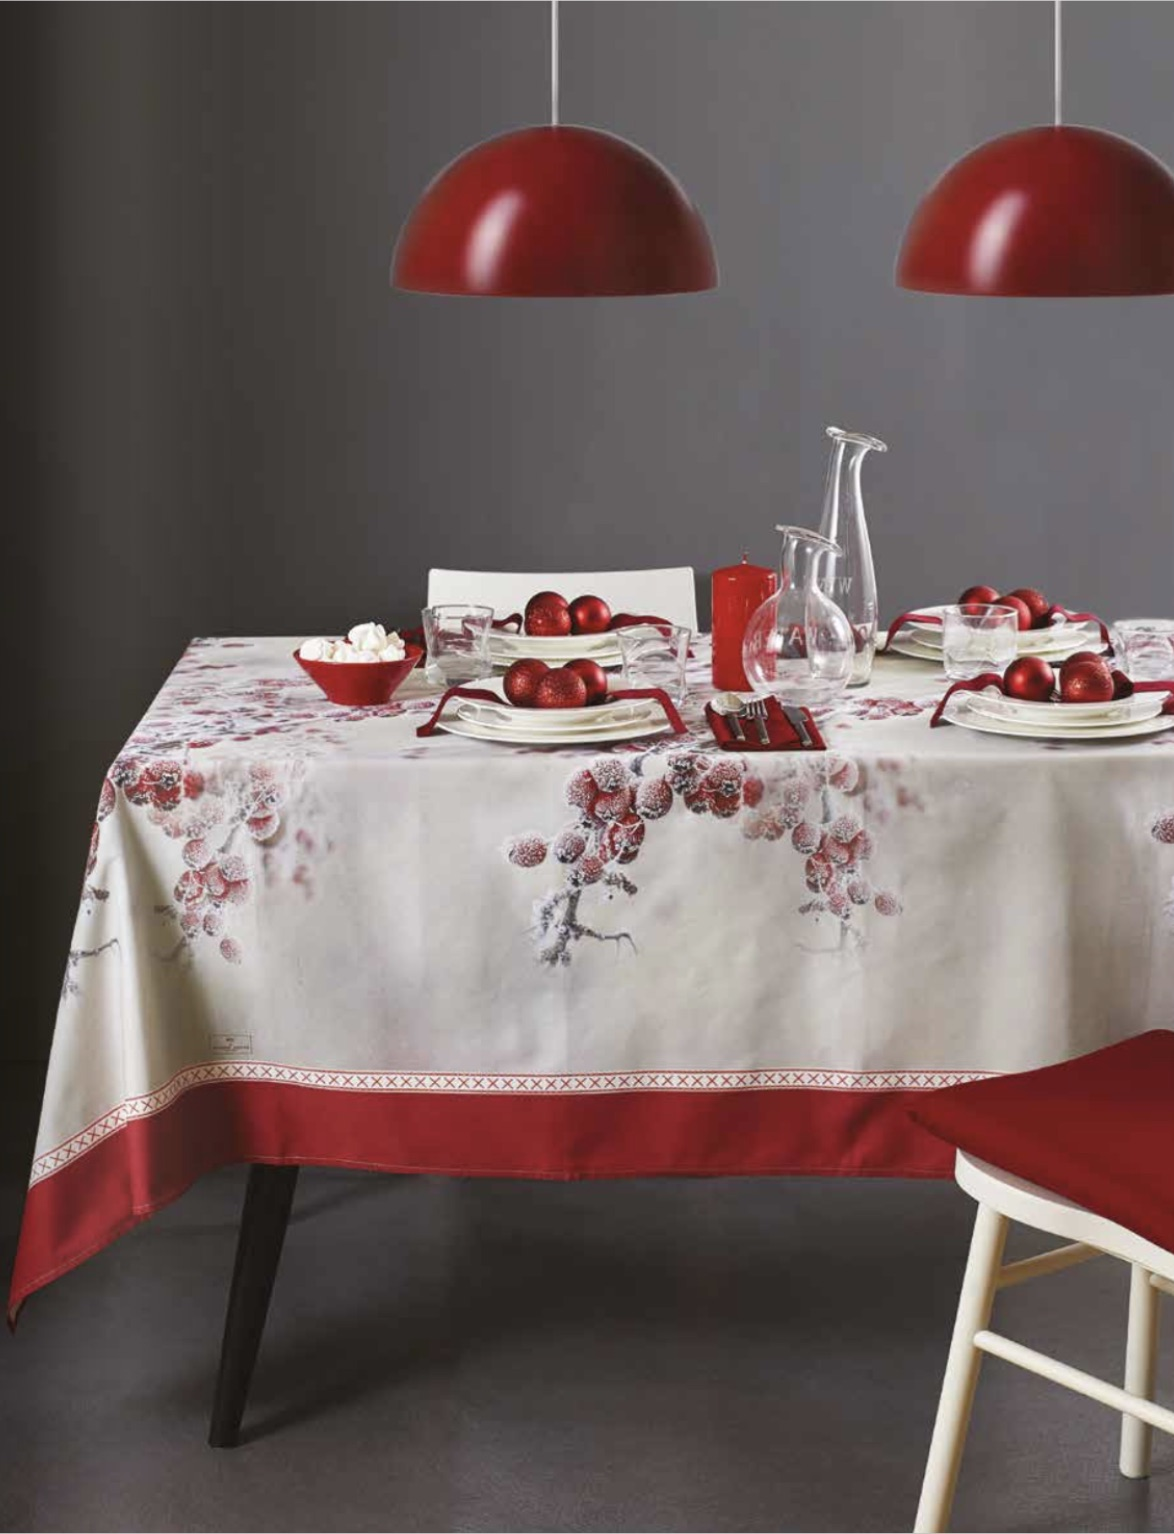 MAISON SUCREE' TOVAGLIA NATALIZIA IN COTONE HOLLY BERRY